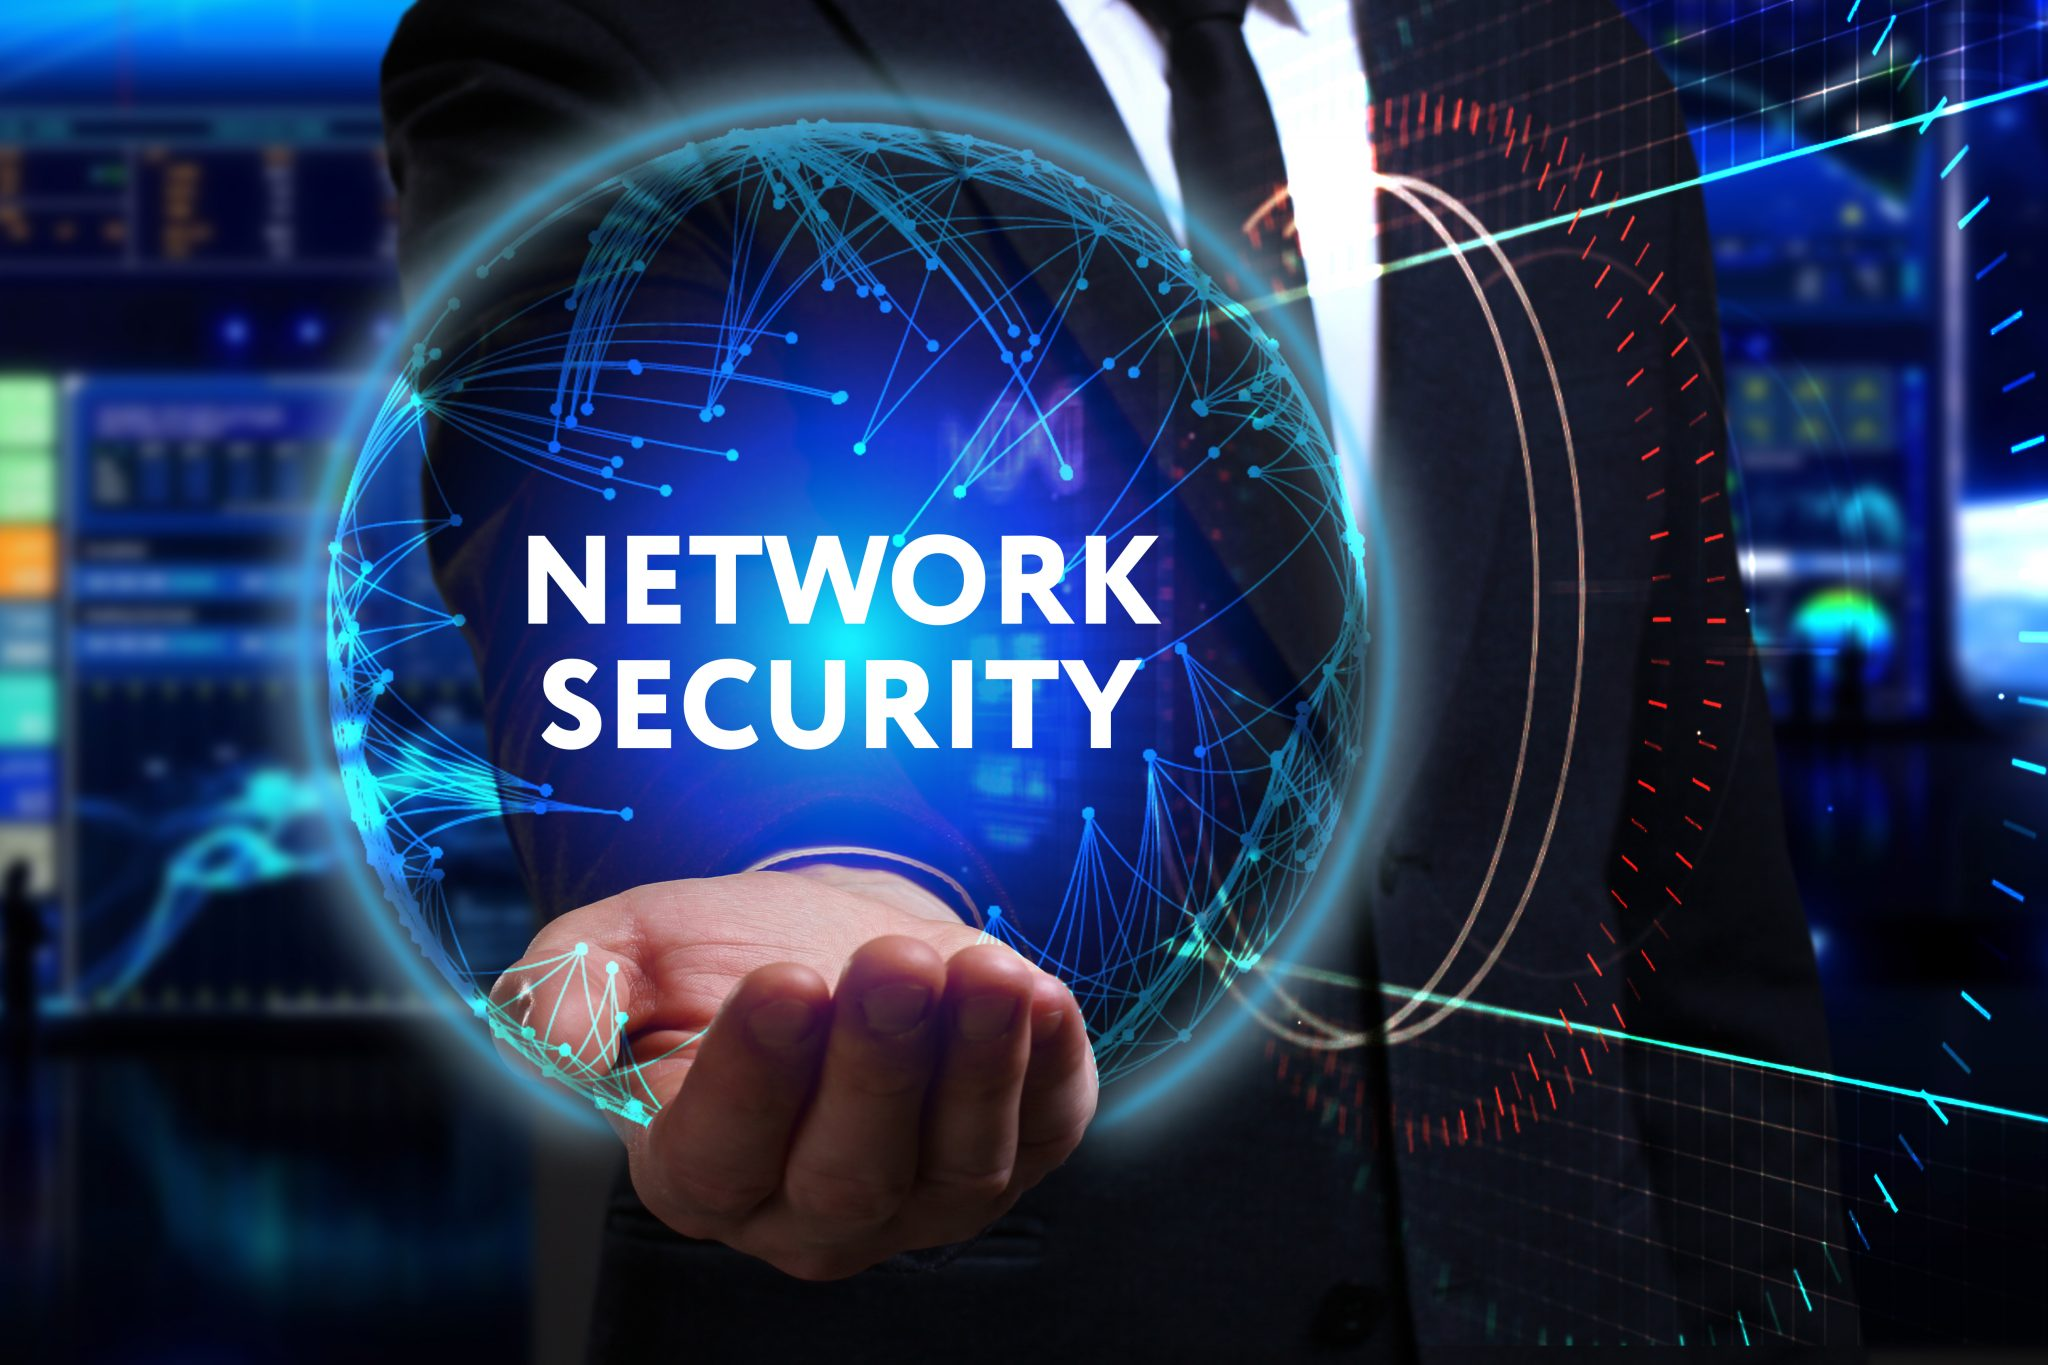 Network Security2